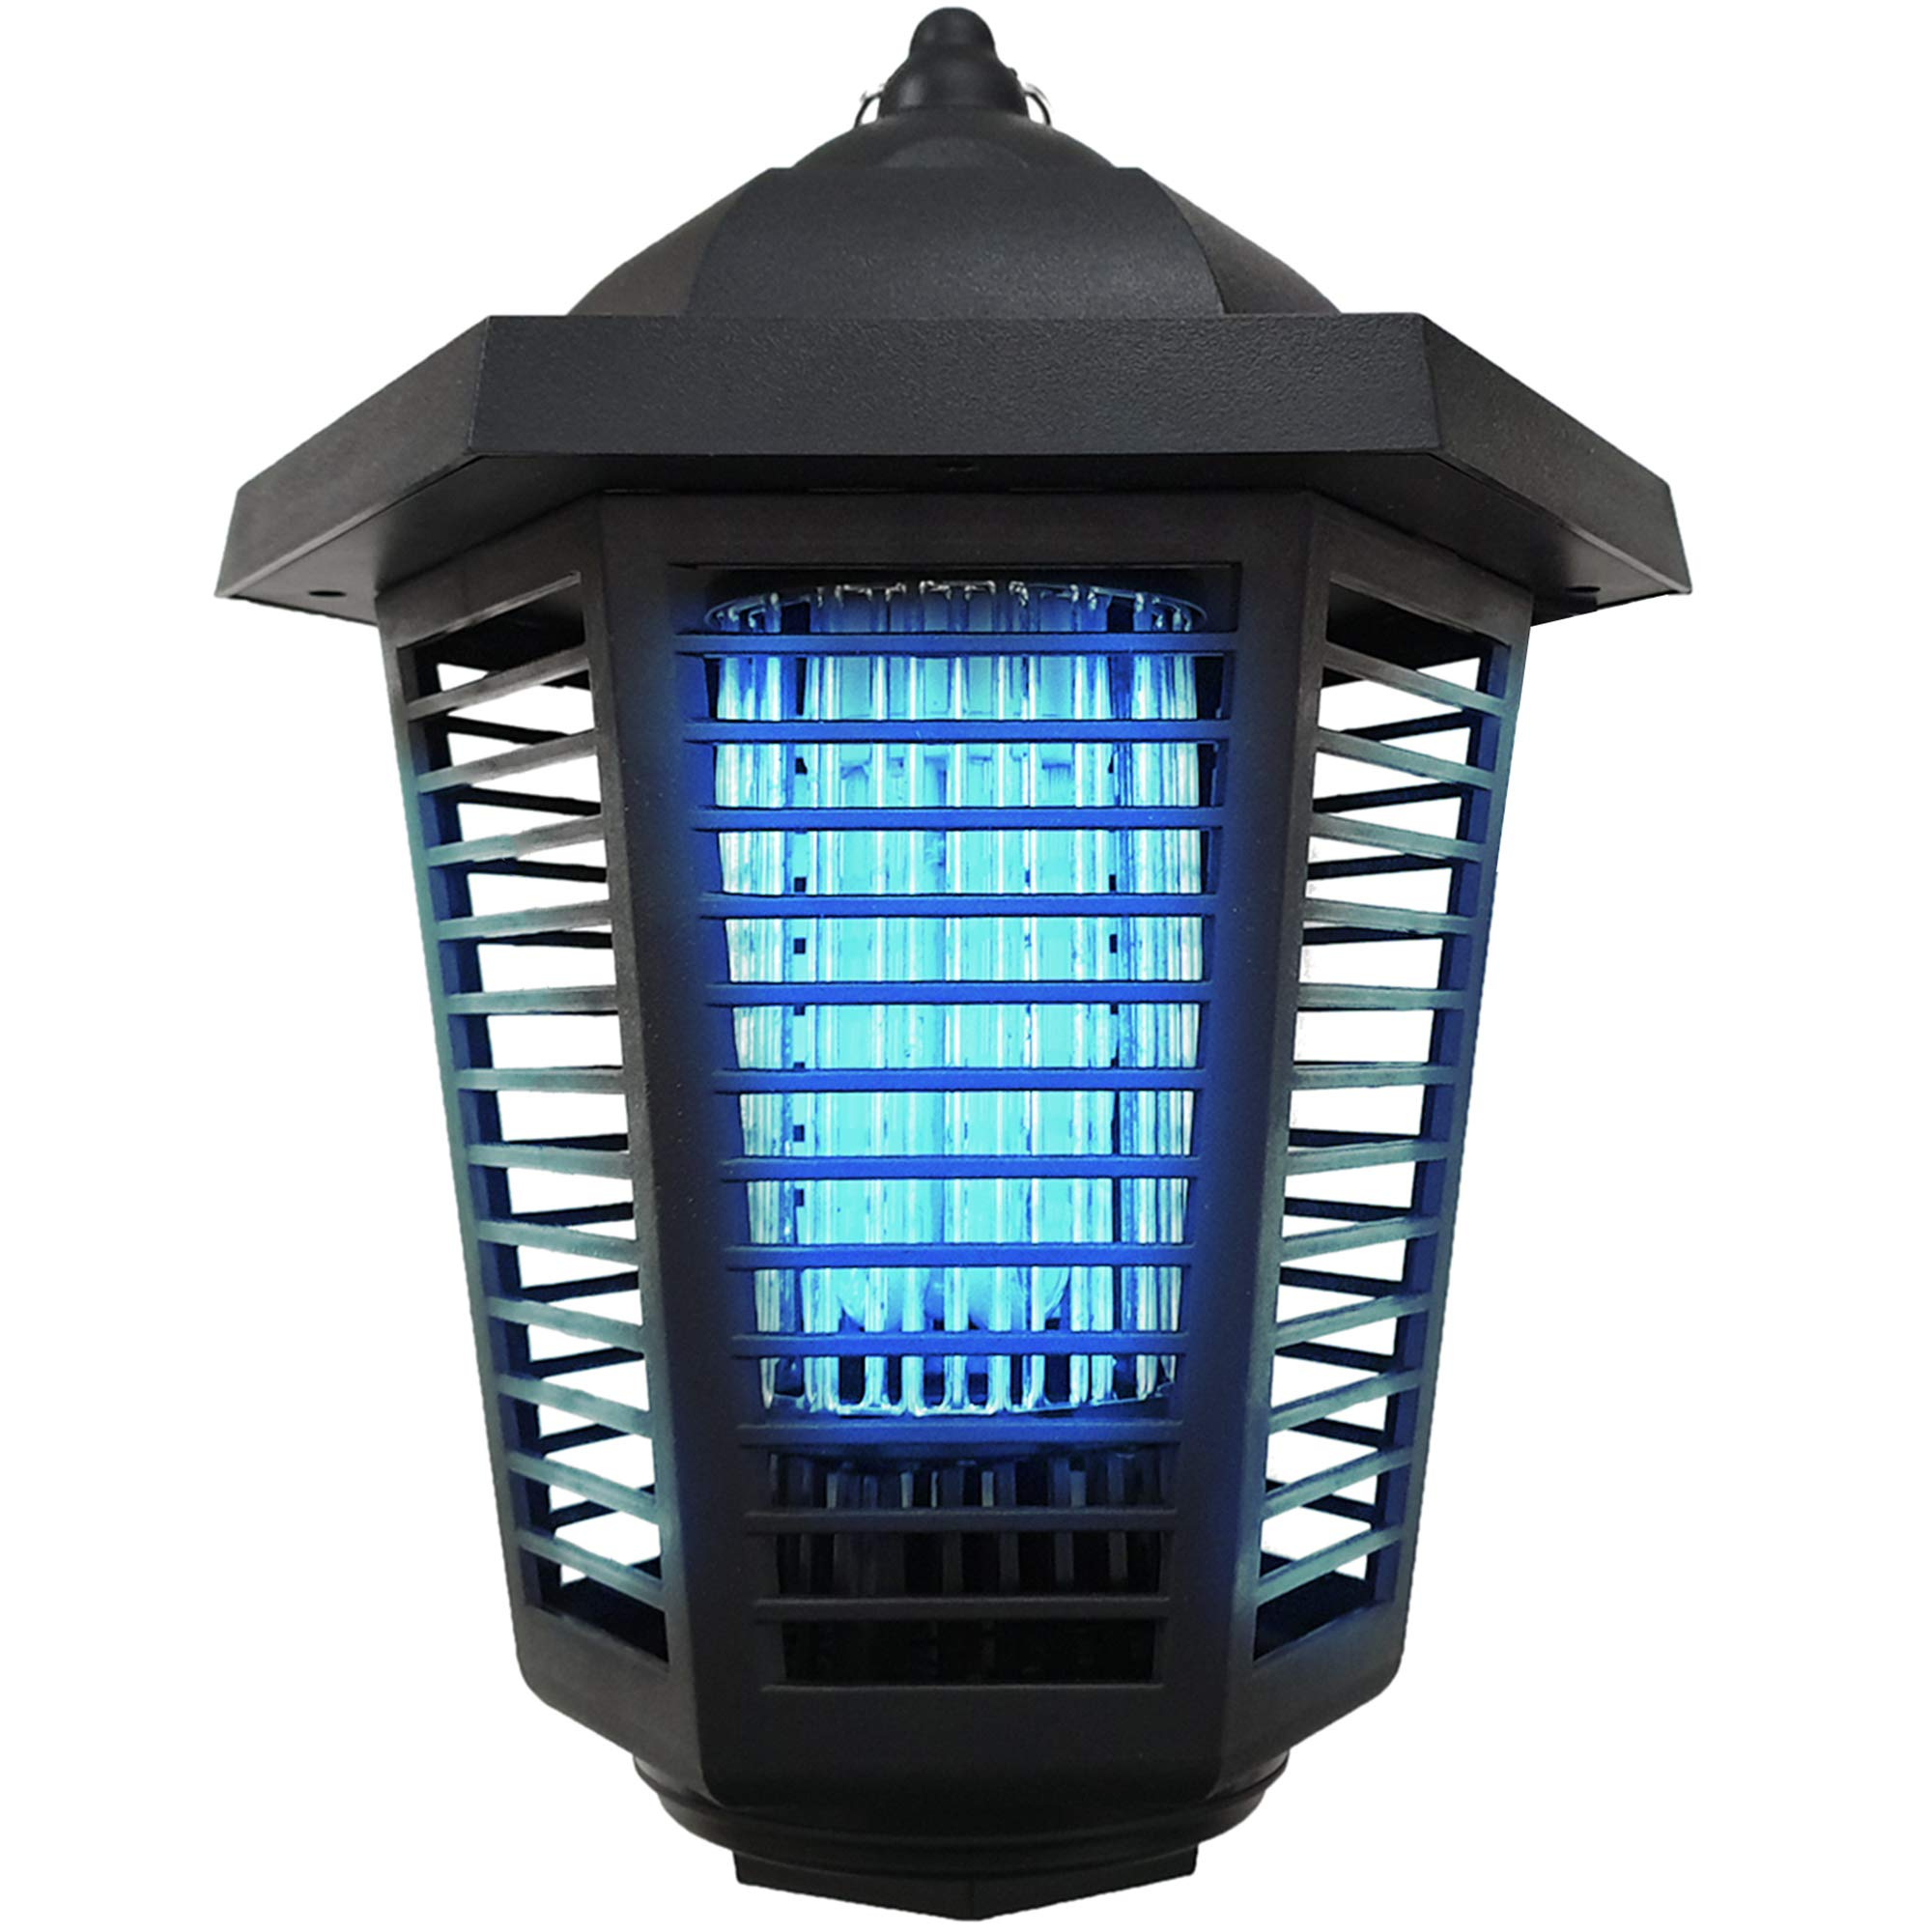 Pestnot Bug Zapper Electric Mosquito Killer - BZ1a-20W Bug Zapper Outdoor & Indoor with IP24 Water Resistance & Dedicated Atrractant Space. Upgraded 2019 360 UVA Bulb. Fly Gnat Zapper (20W) by Pestnot